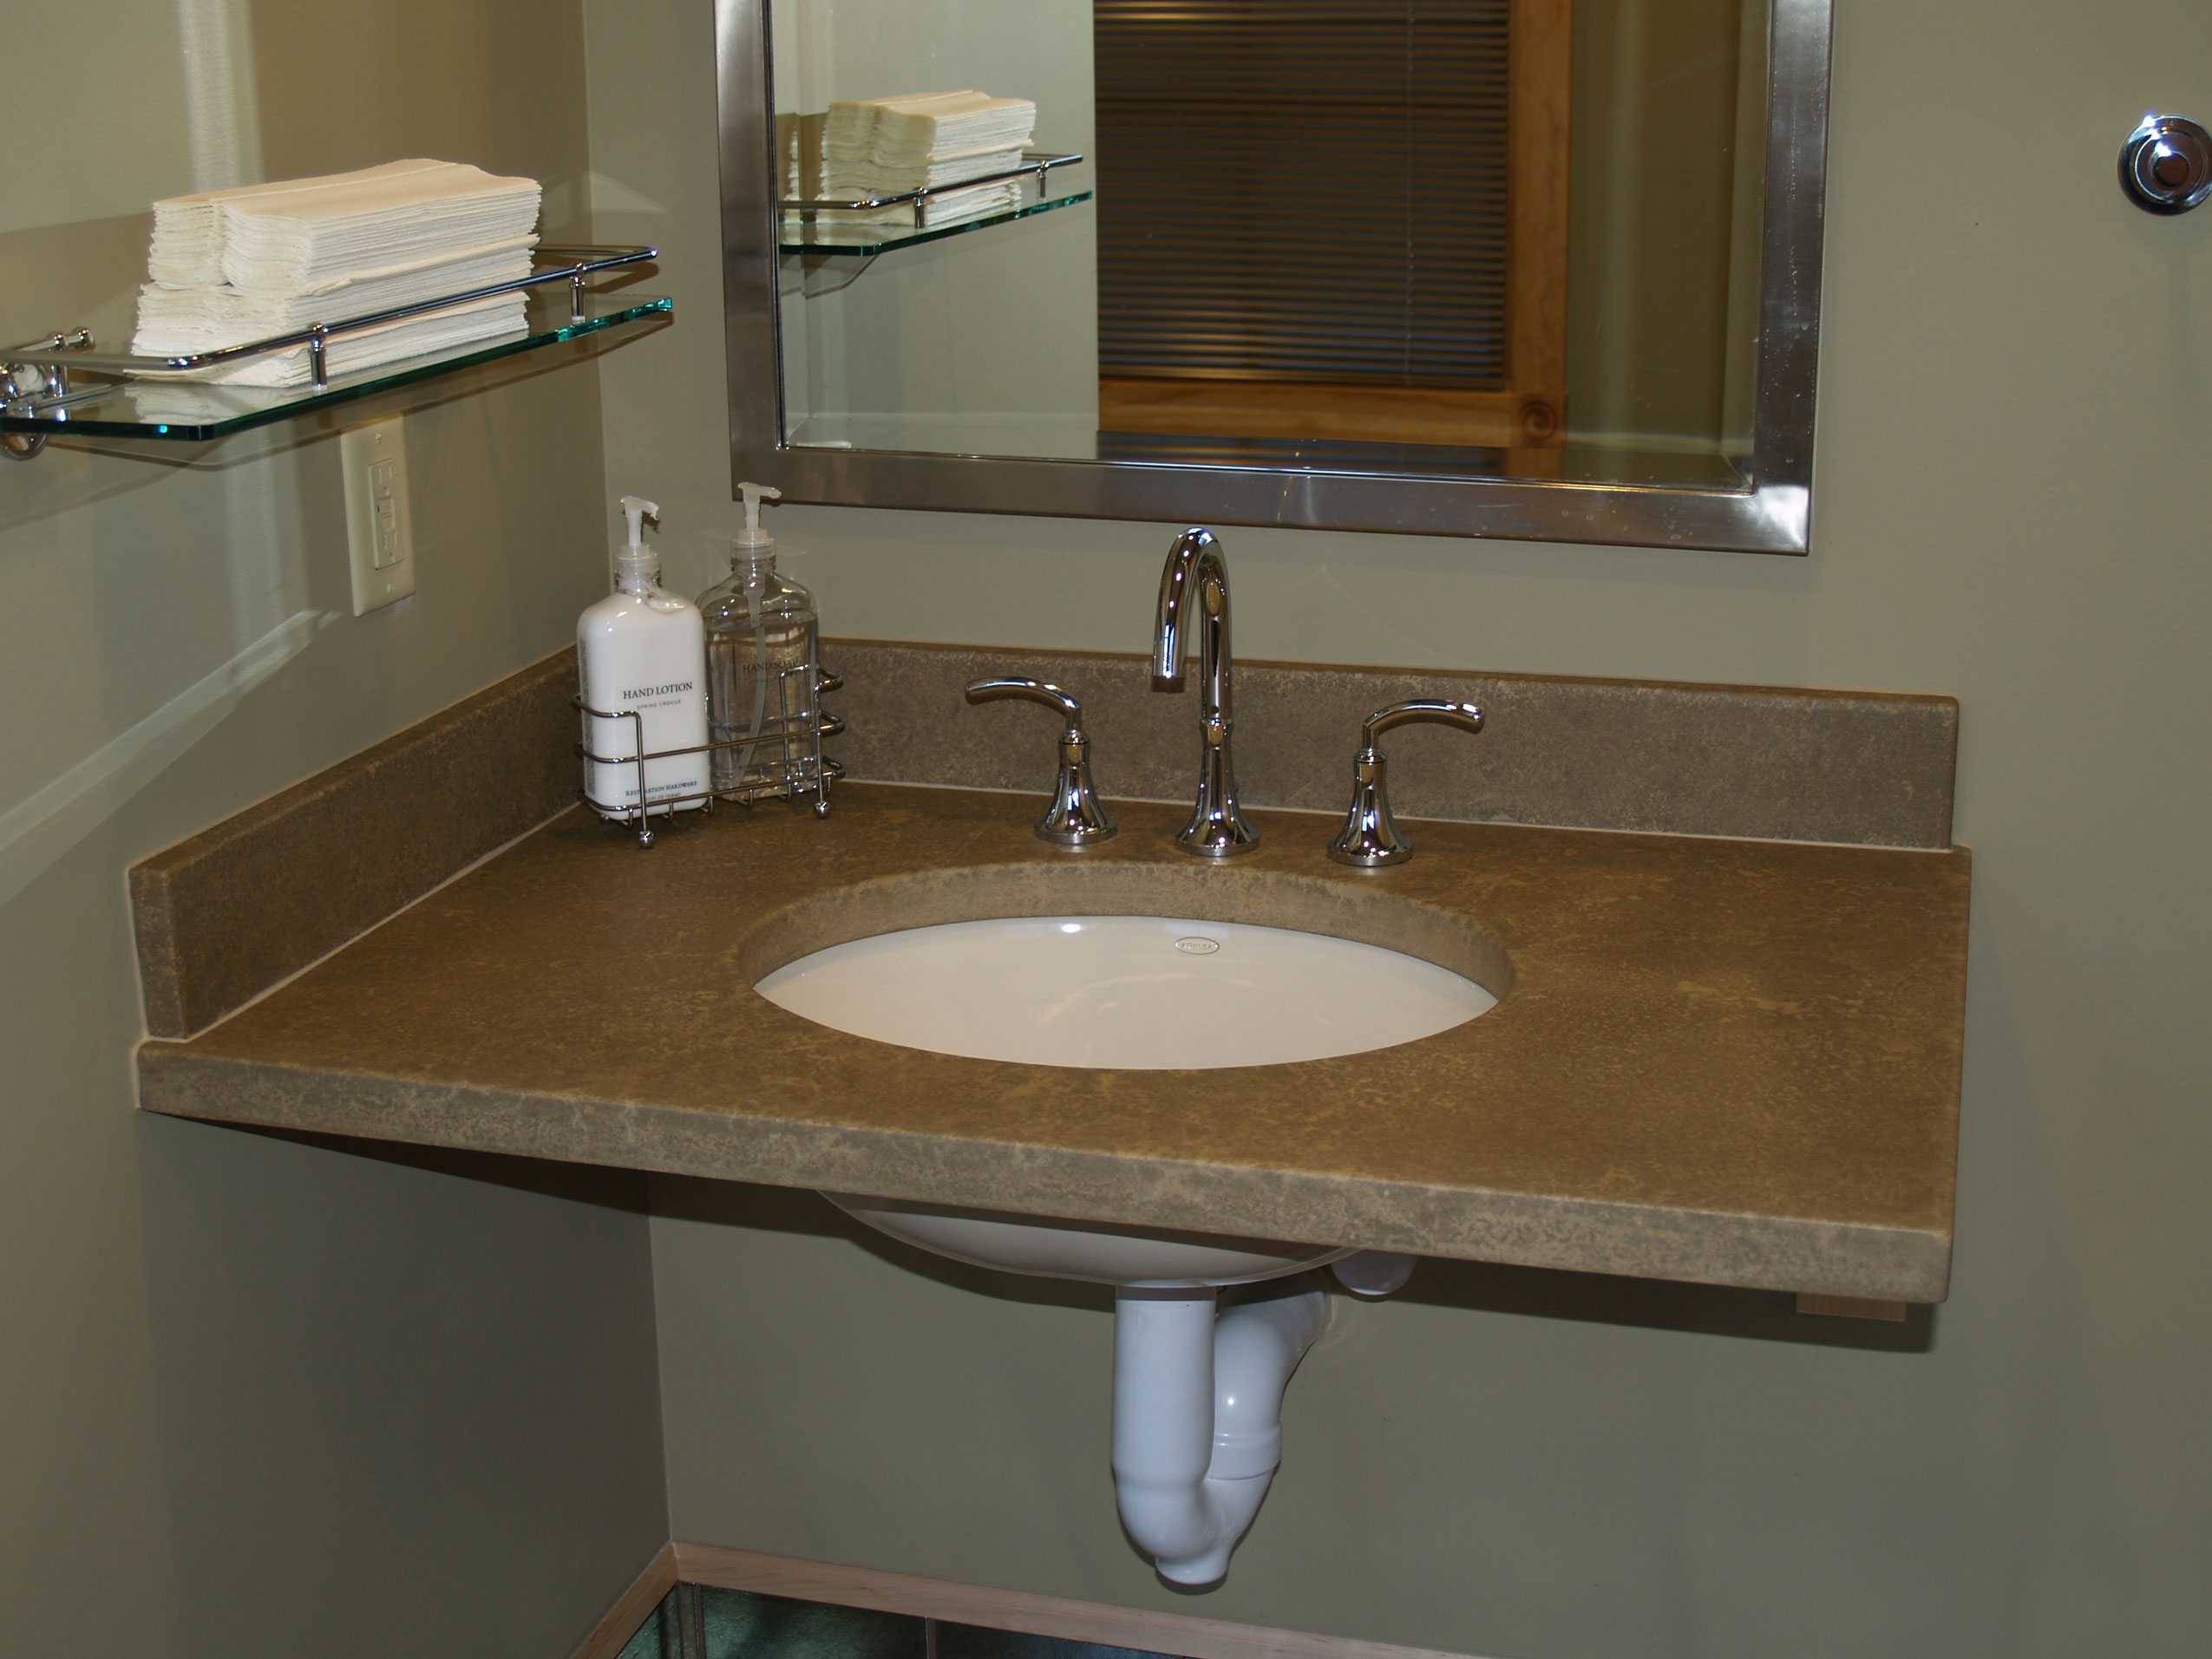 single faucet custom concrete residential bathroom sink